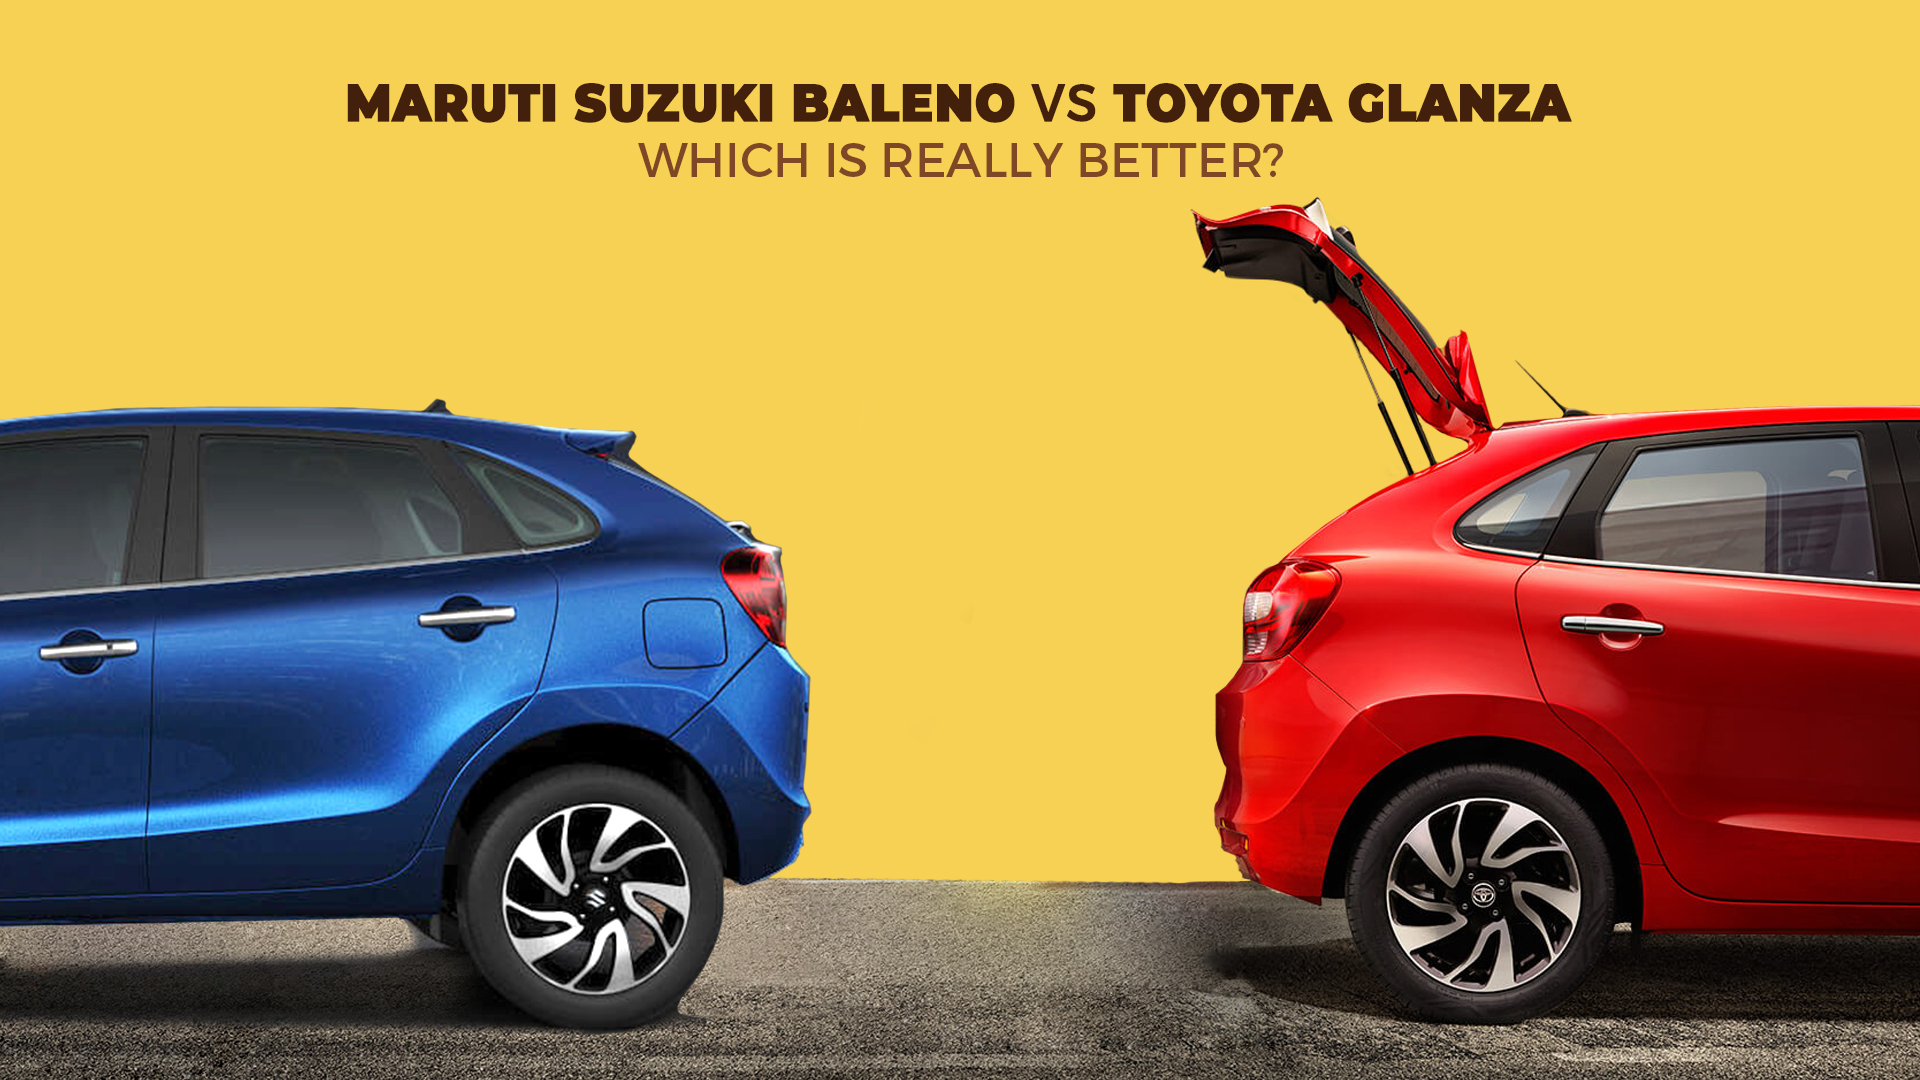 Maruti Suzuki Baleno Vs Toyota Glanza: Which Is Really Better?